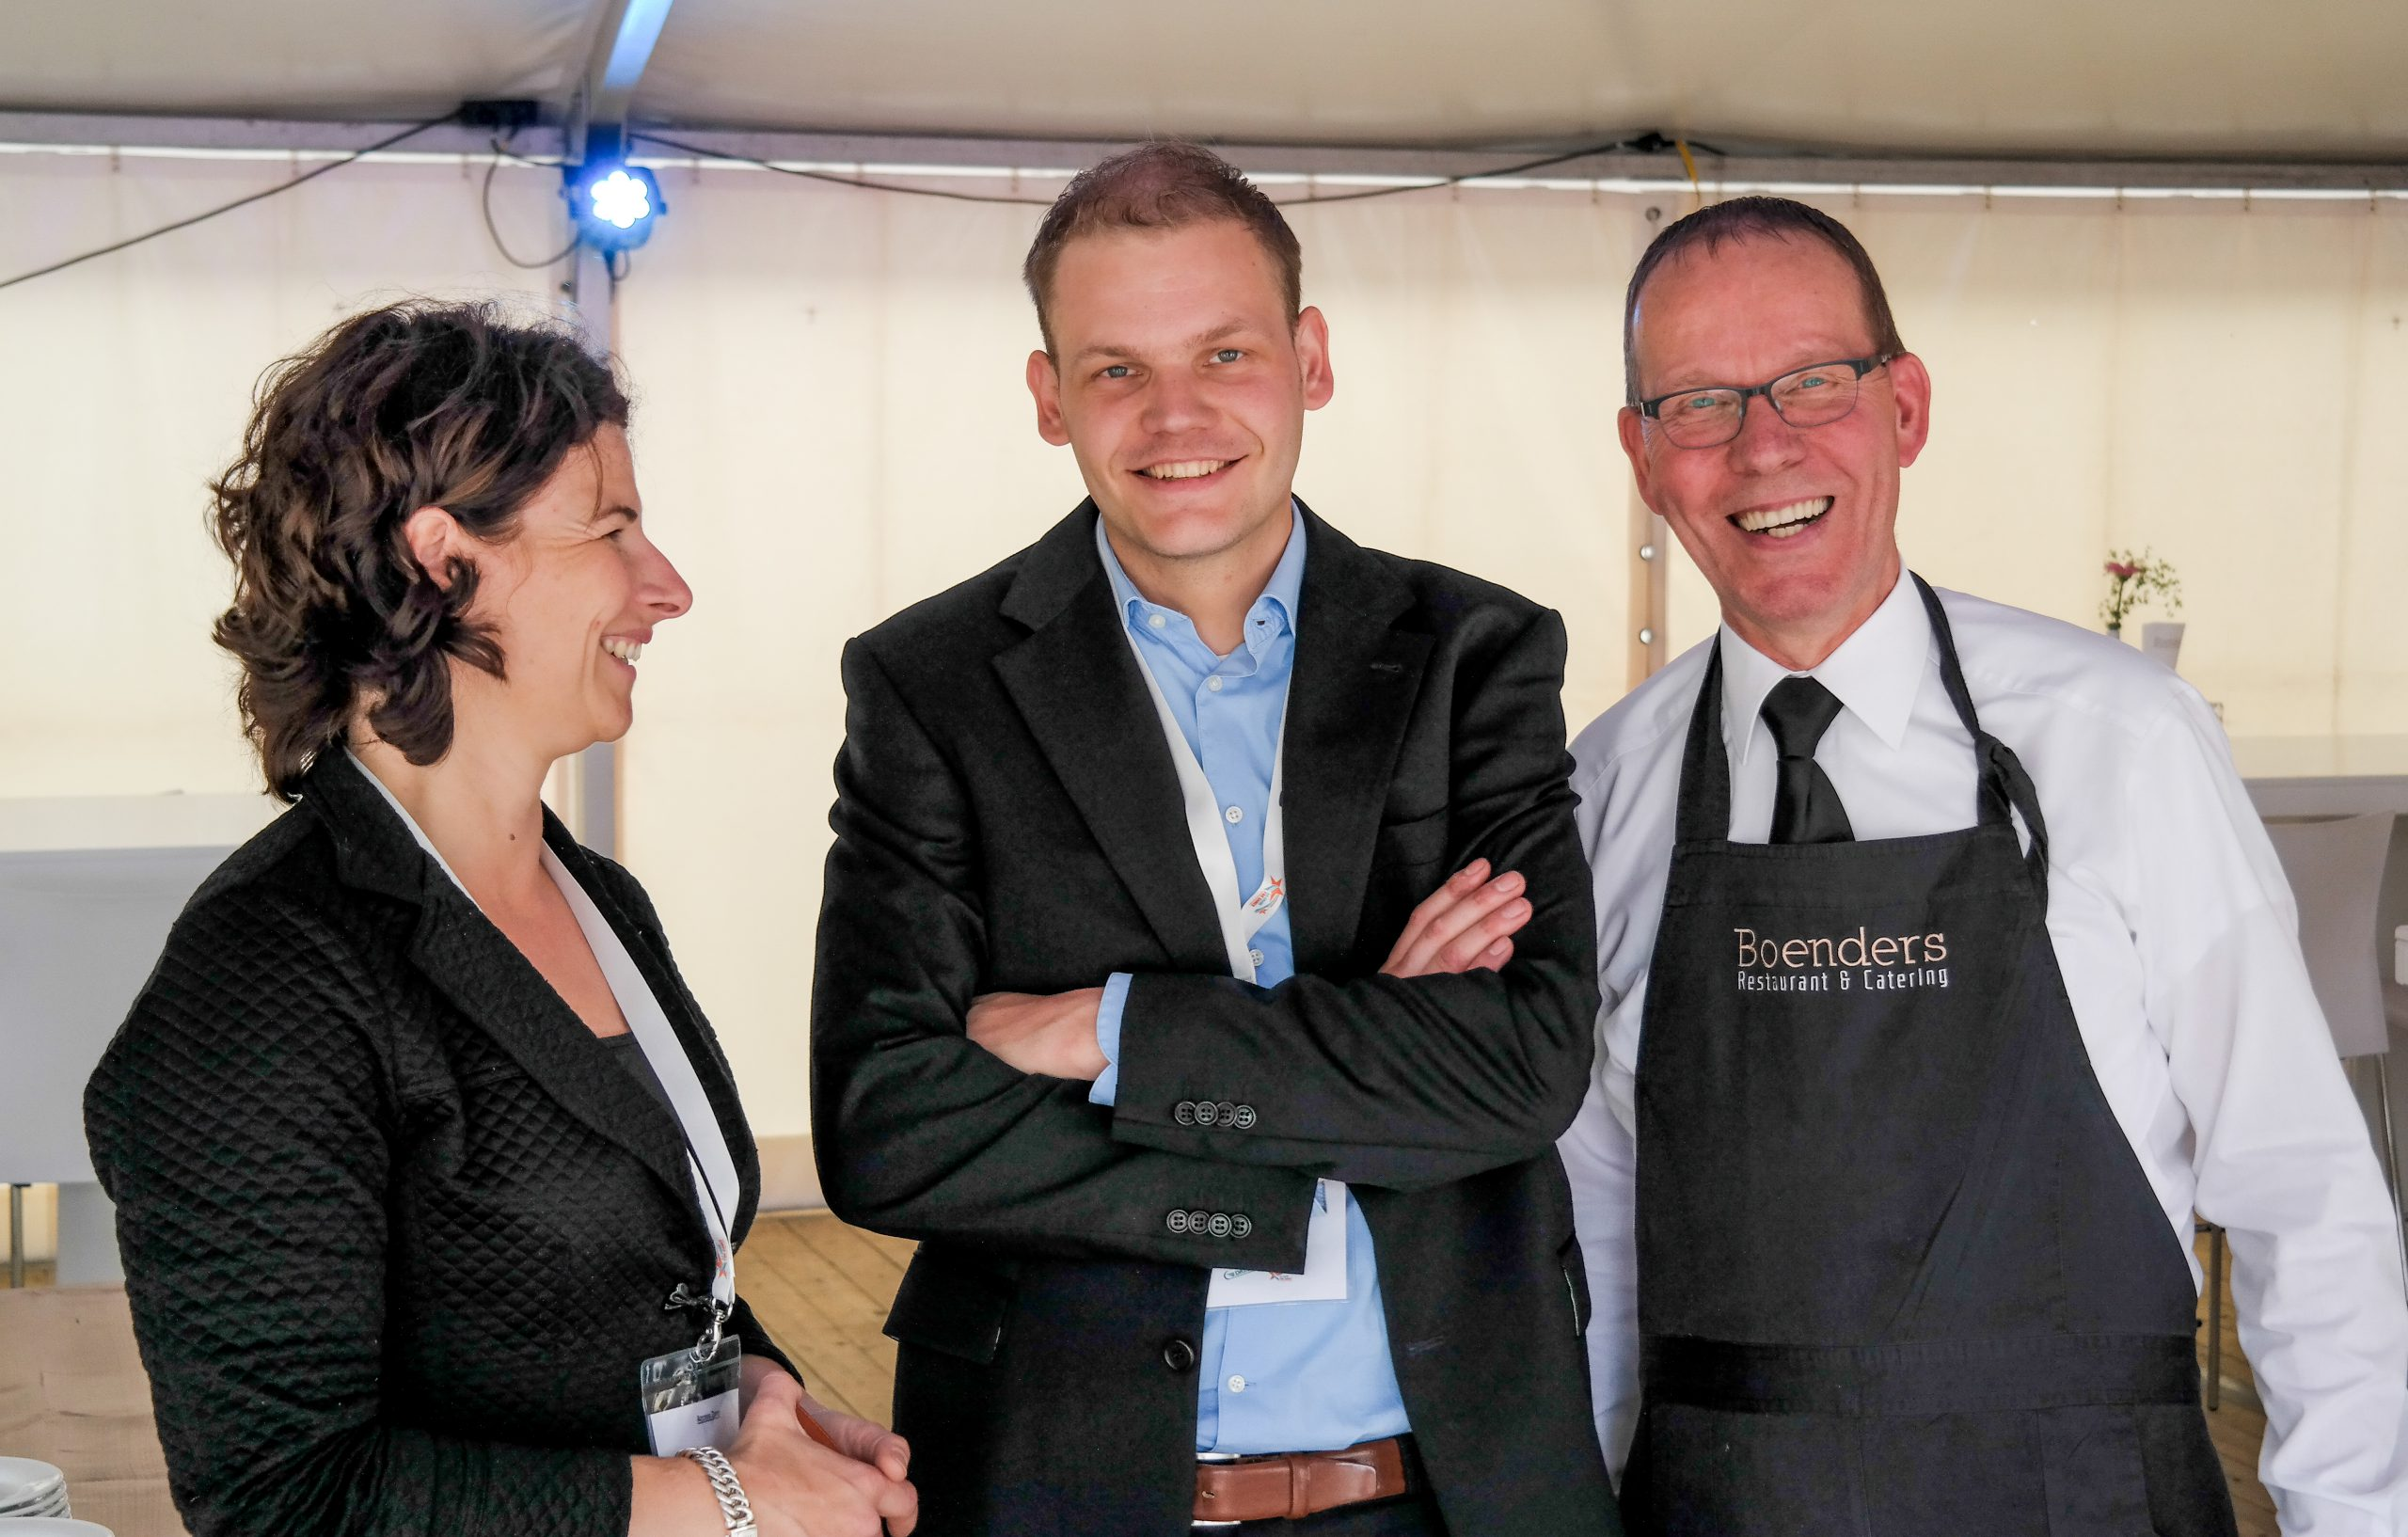 Boenders Catering - Over ons